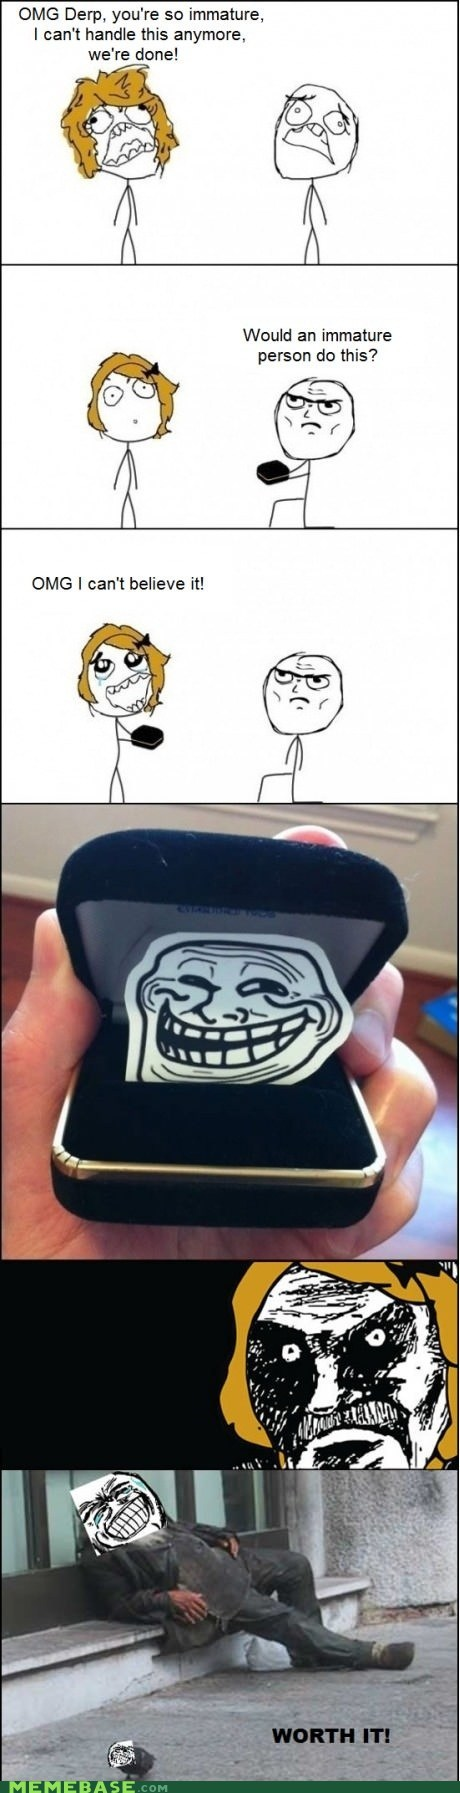 immature marriage proposal Rage Comics worth it - 6511350272